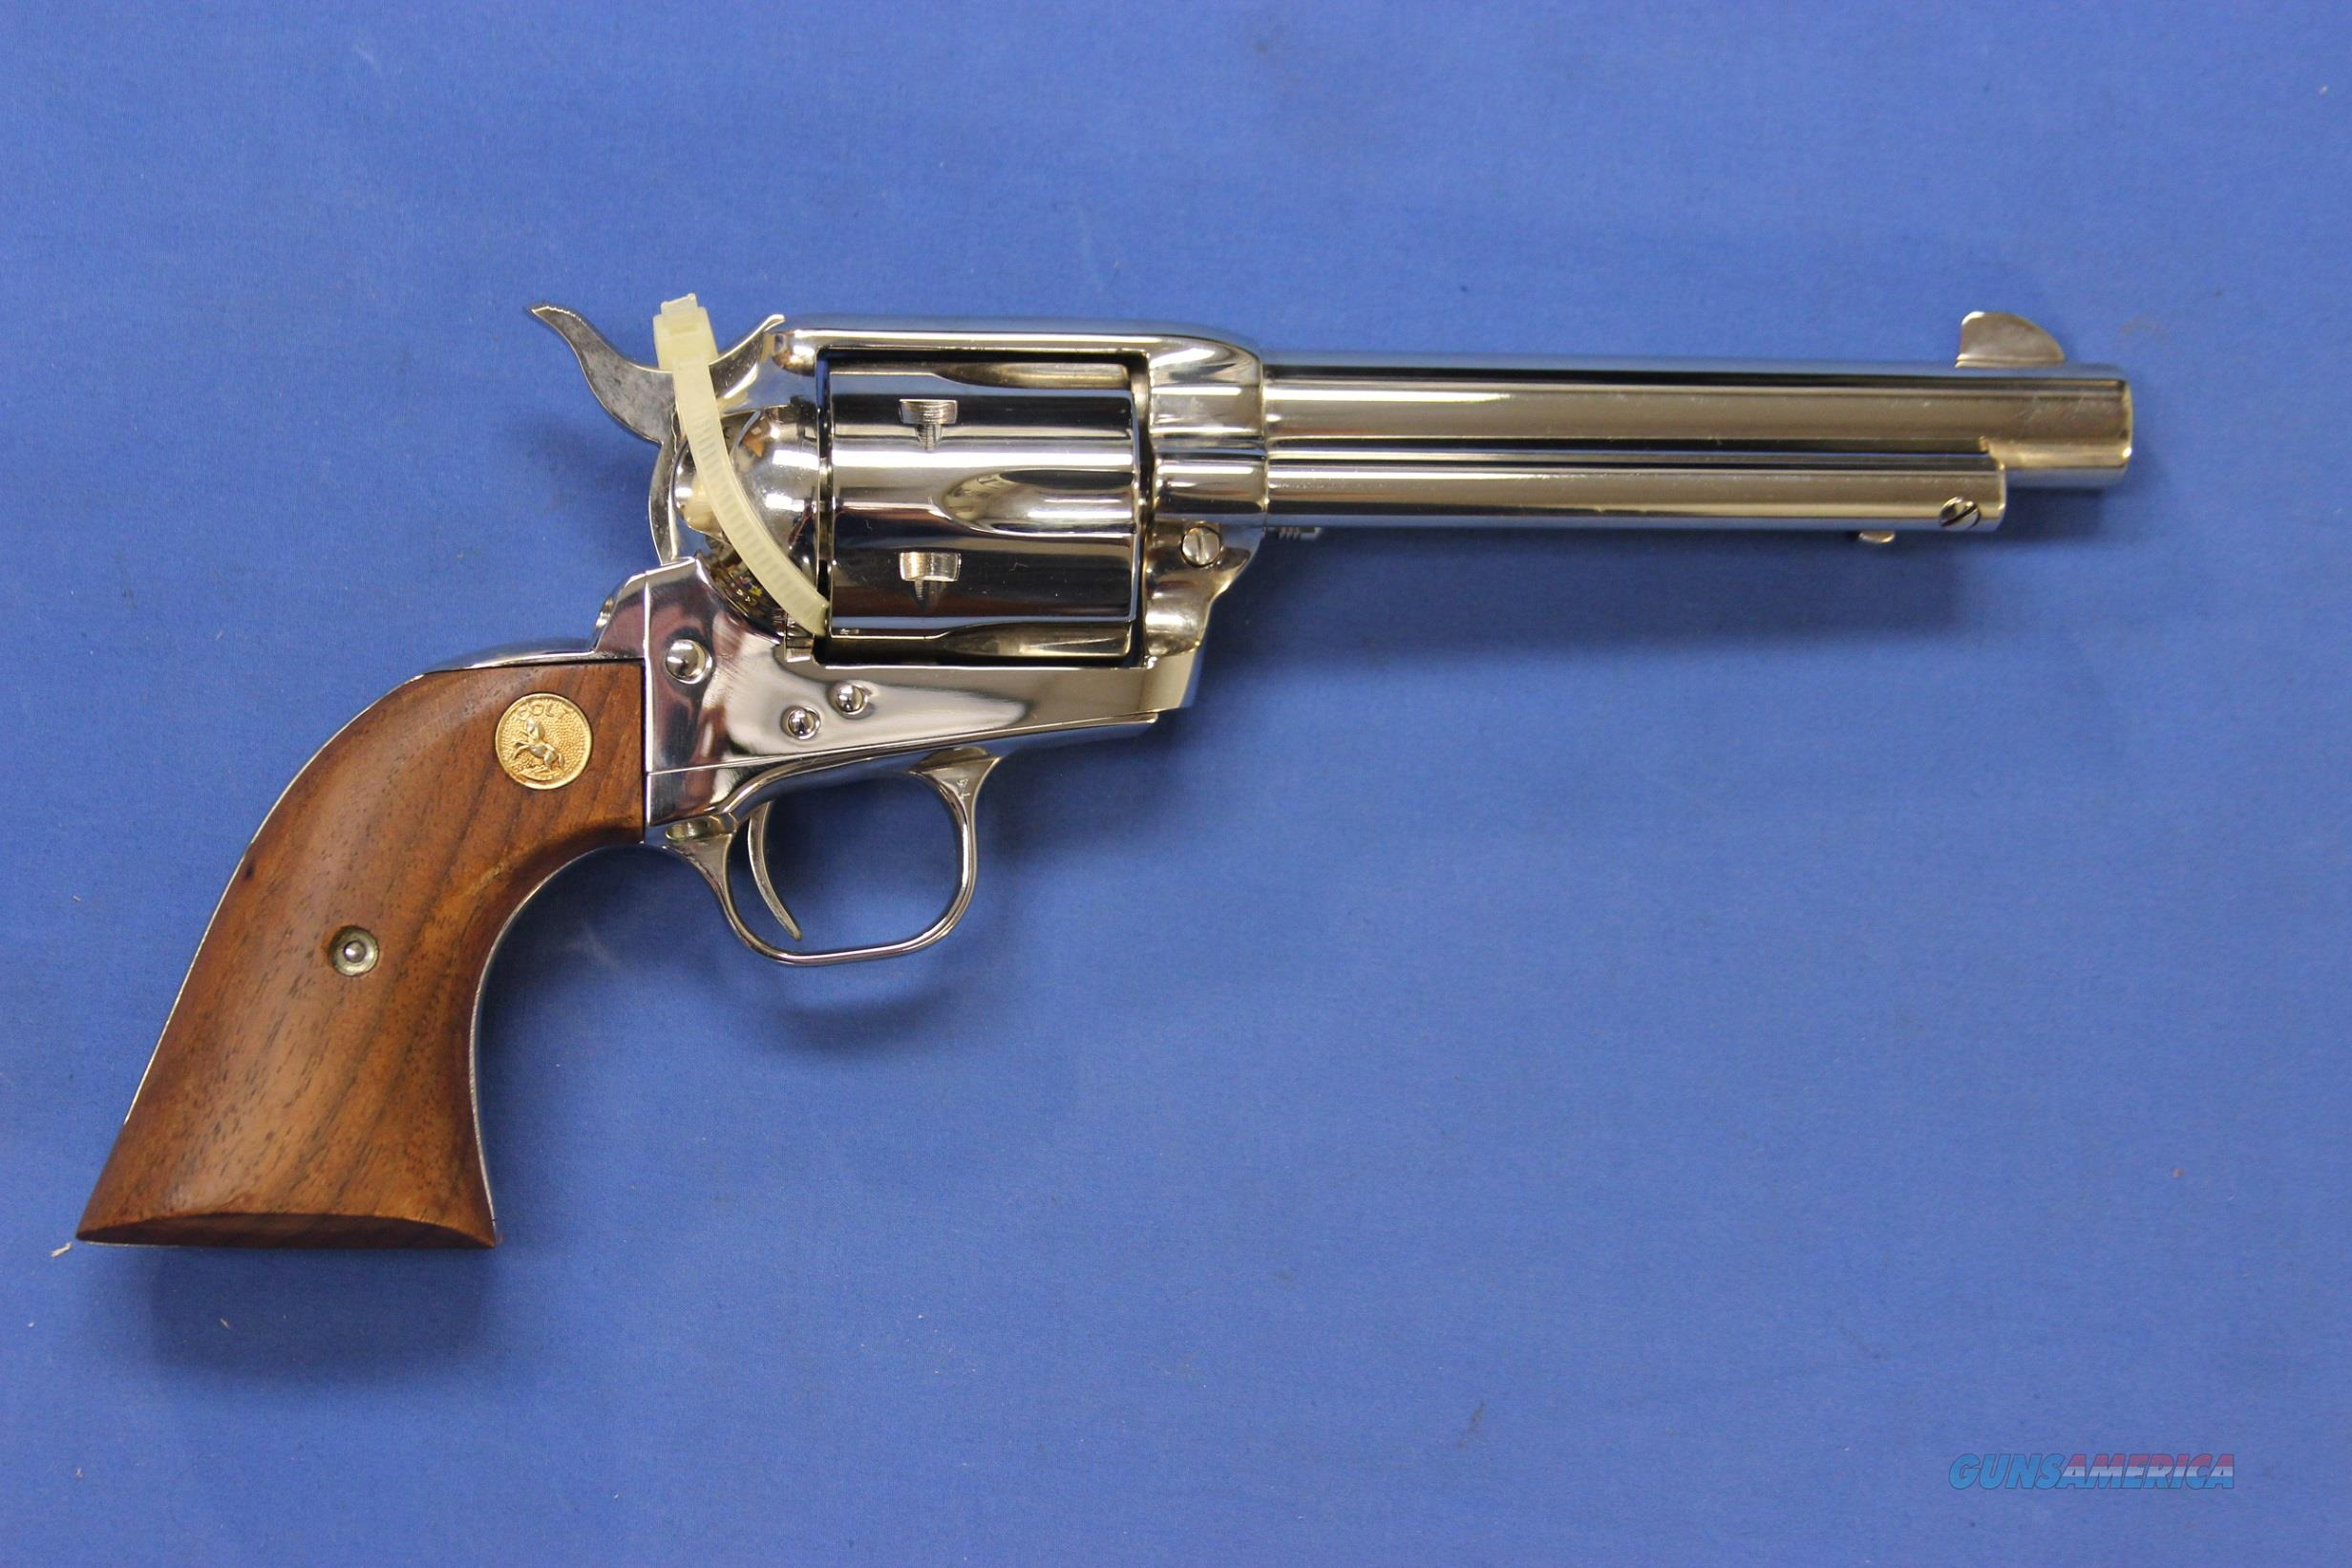 COLT SINGLE ACTION ARMY 3rd GENERATION .357 MAG NICKEL w/BOX  Guns > Pistols > Colt Single Action Revolvers - 3rd Gen.